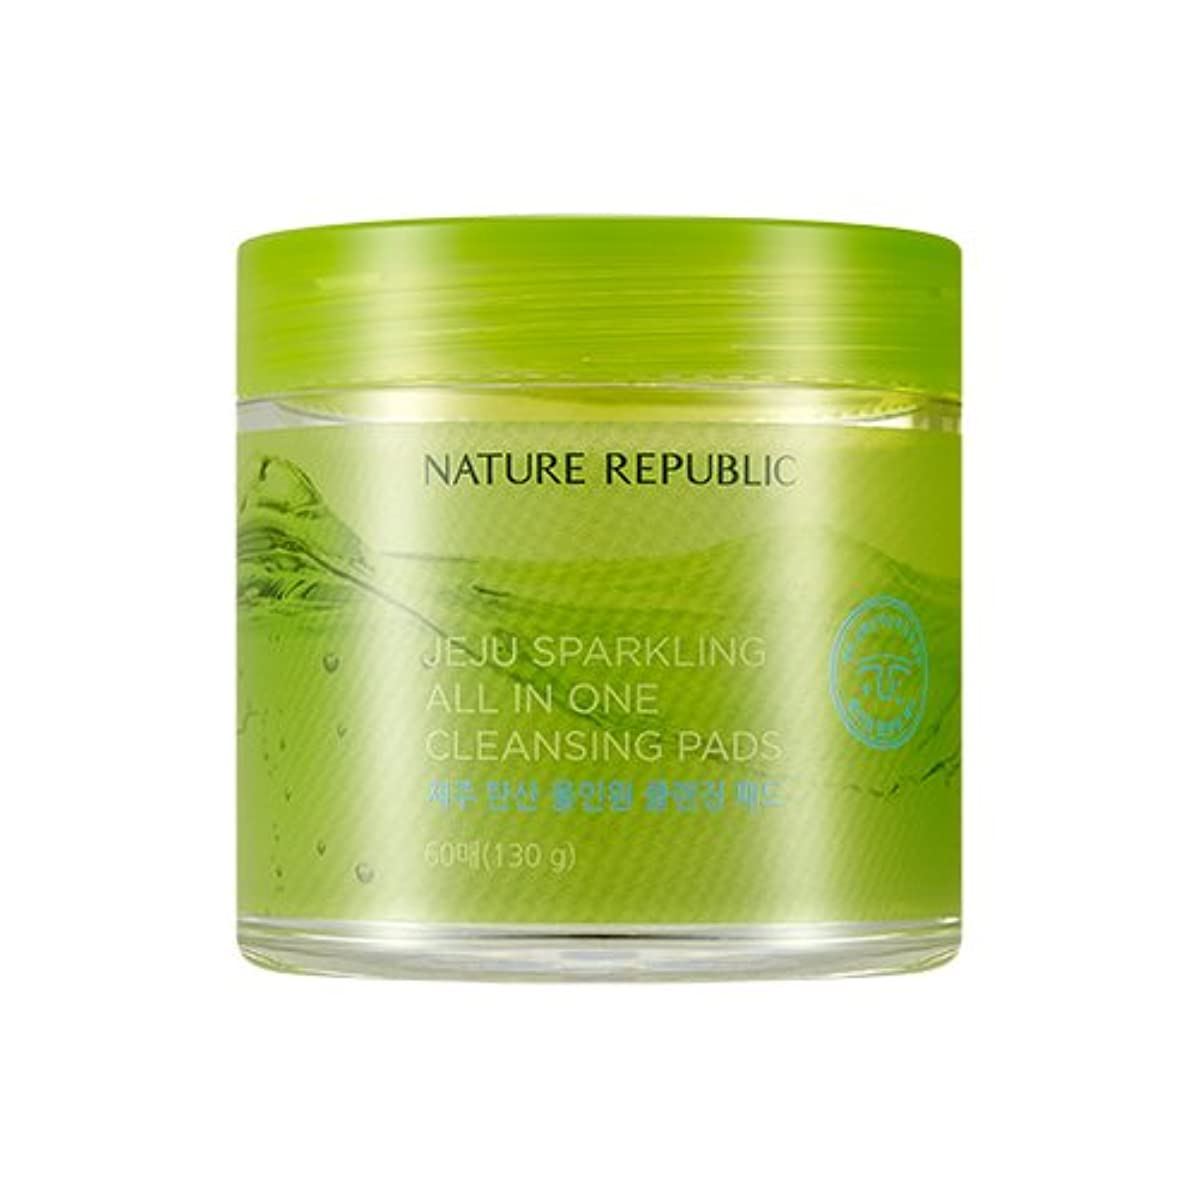 NATURE REPUBLIC JEJU Sparkling All In One Cleansing Pads/ネイチャーリパブリック 済州 スパークリング オールインワンクレンジングパッド 60枚 [並行輸入品]